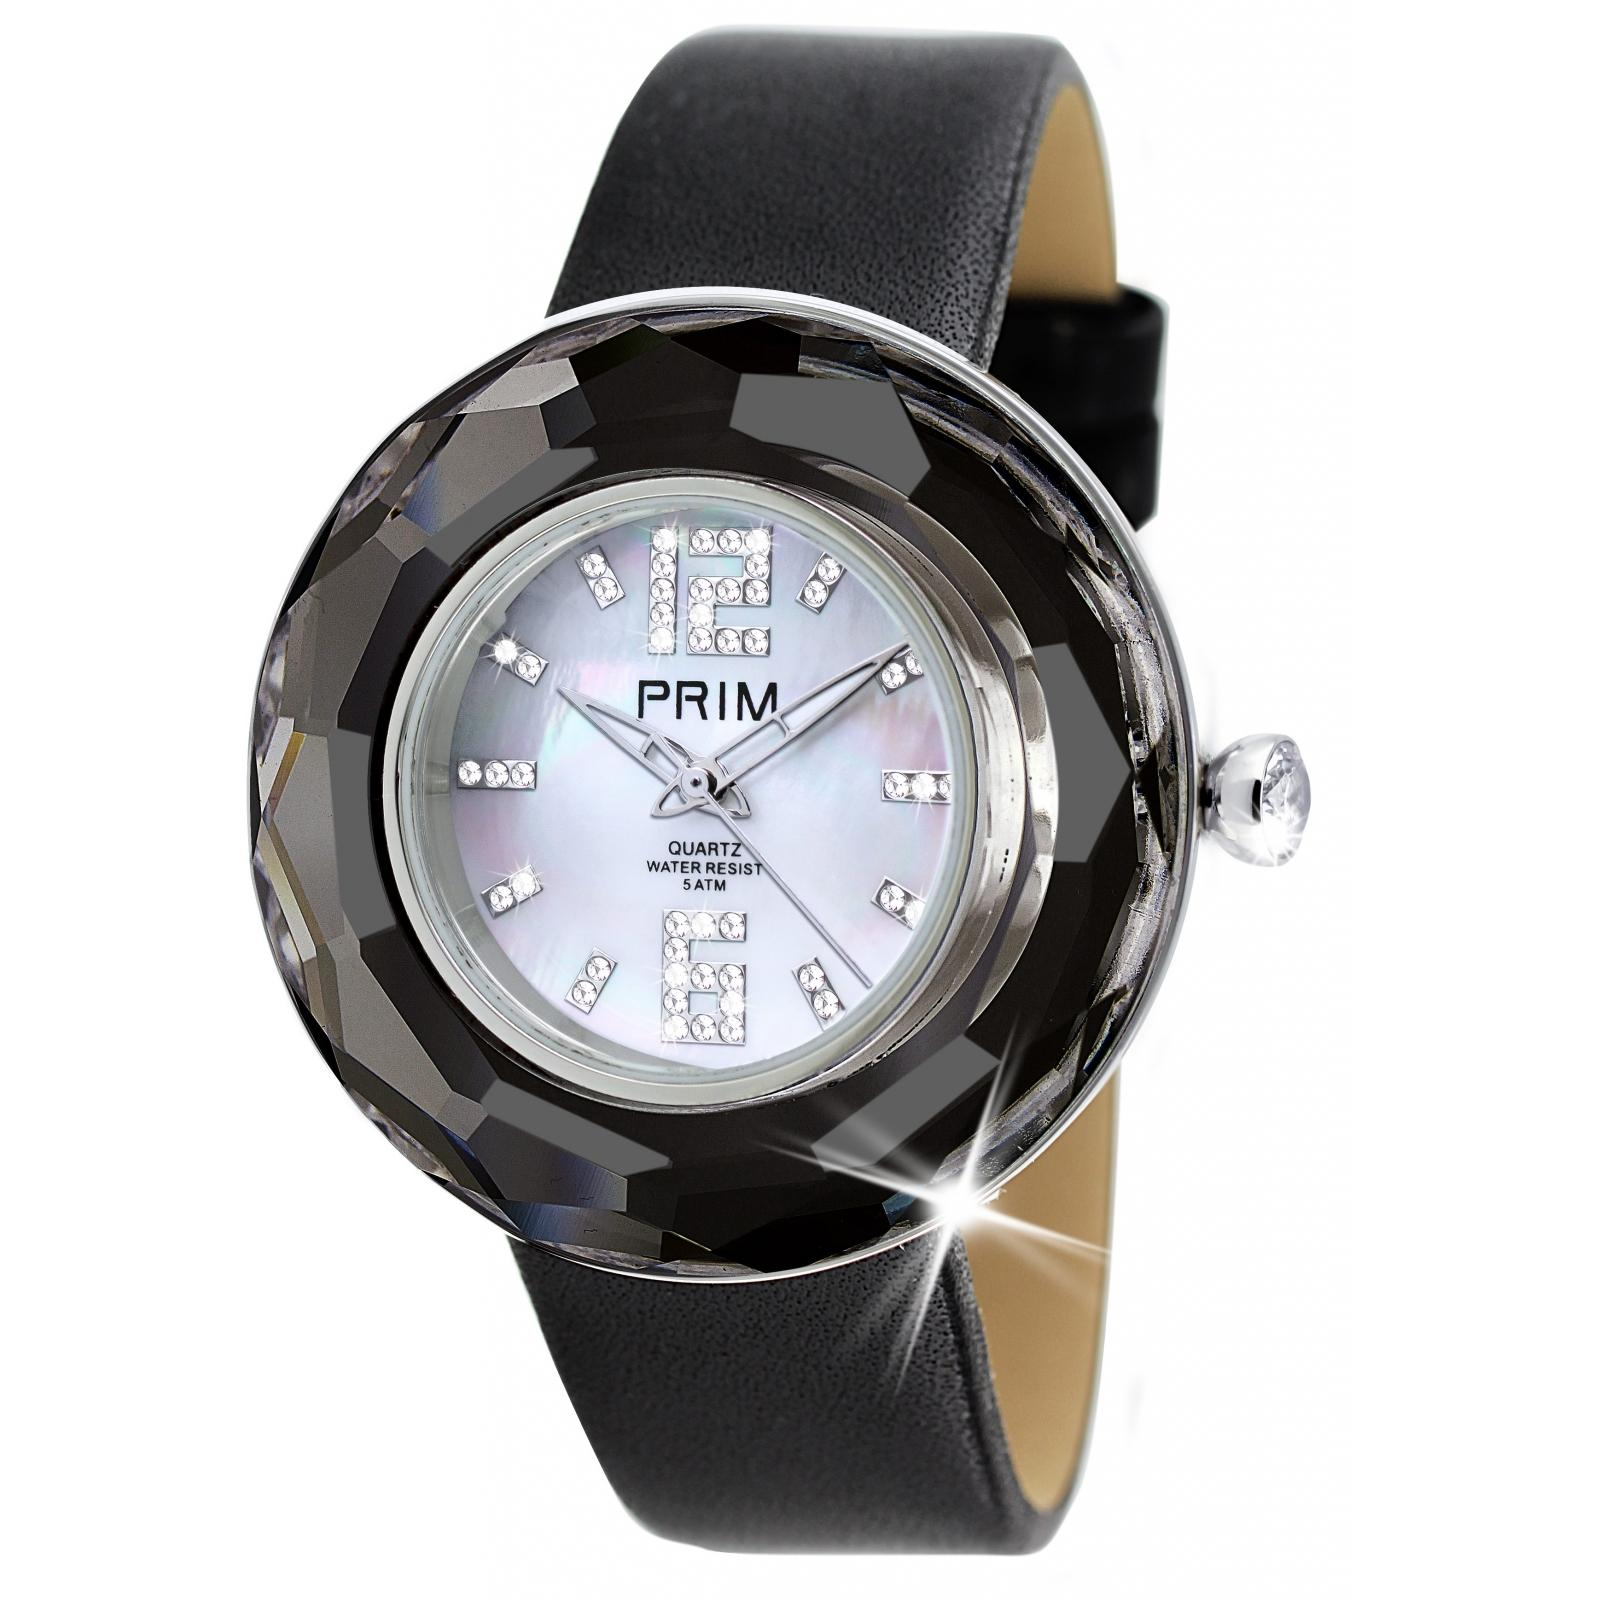 Crystal Time Premium - Ceas Preciosa (Chrome/Black)